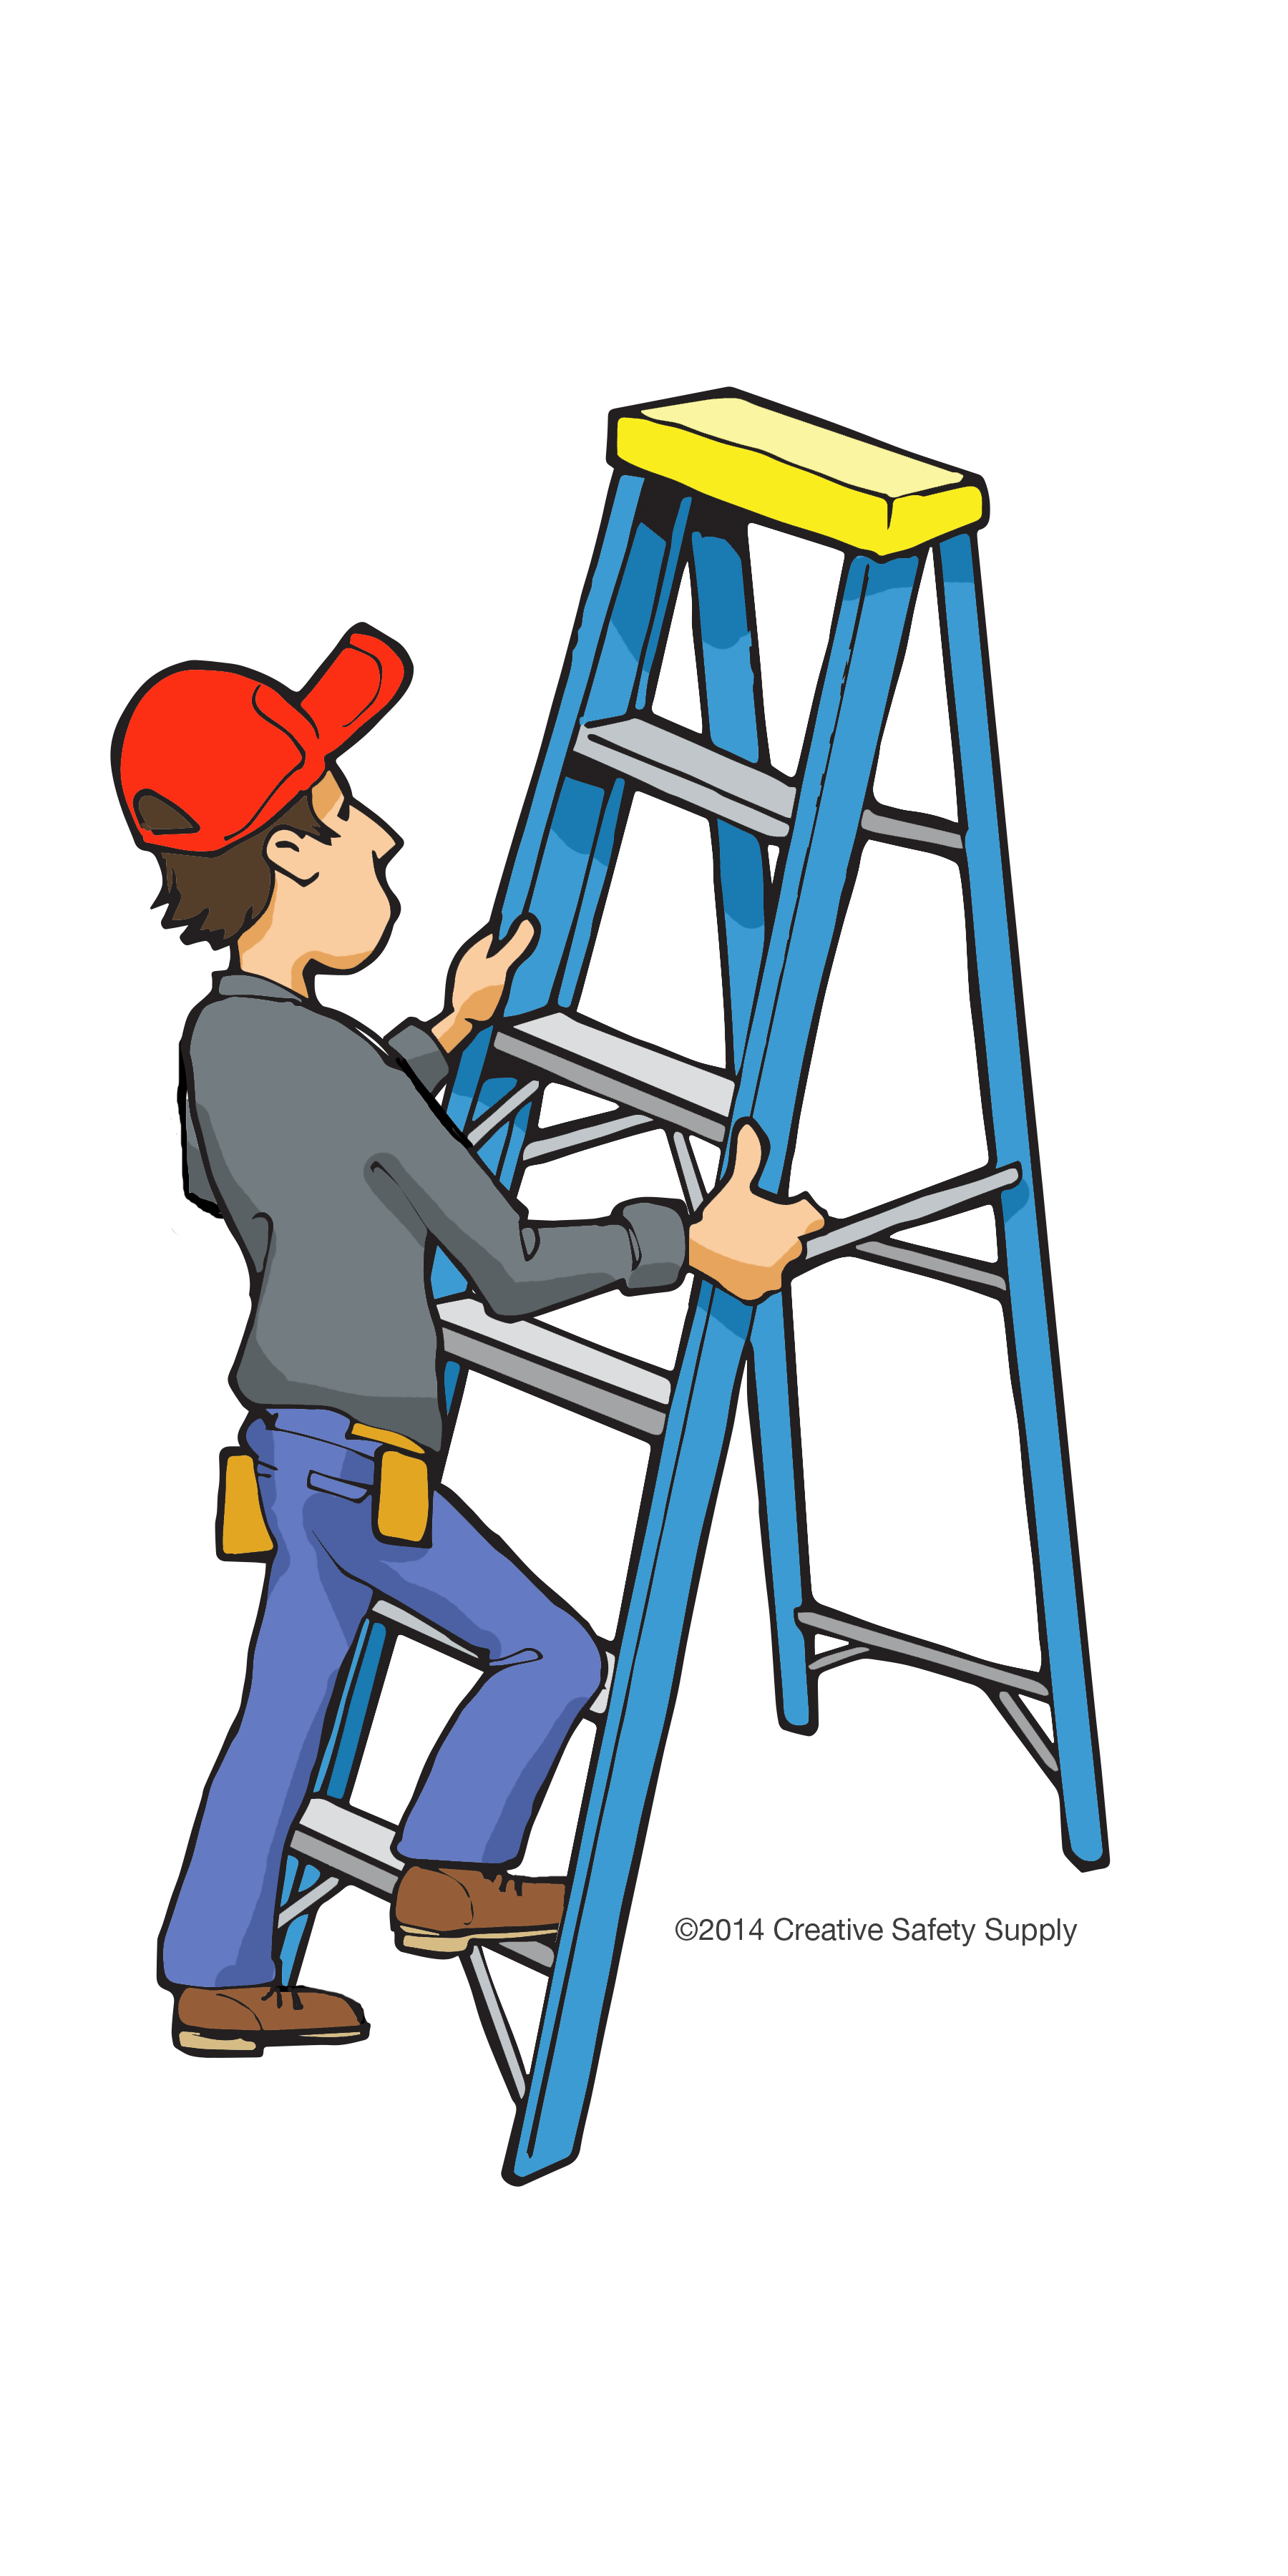 Ladder clipart safety. Image gallery images martine